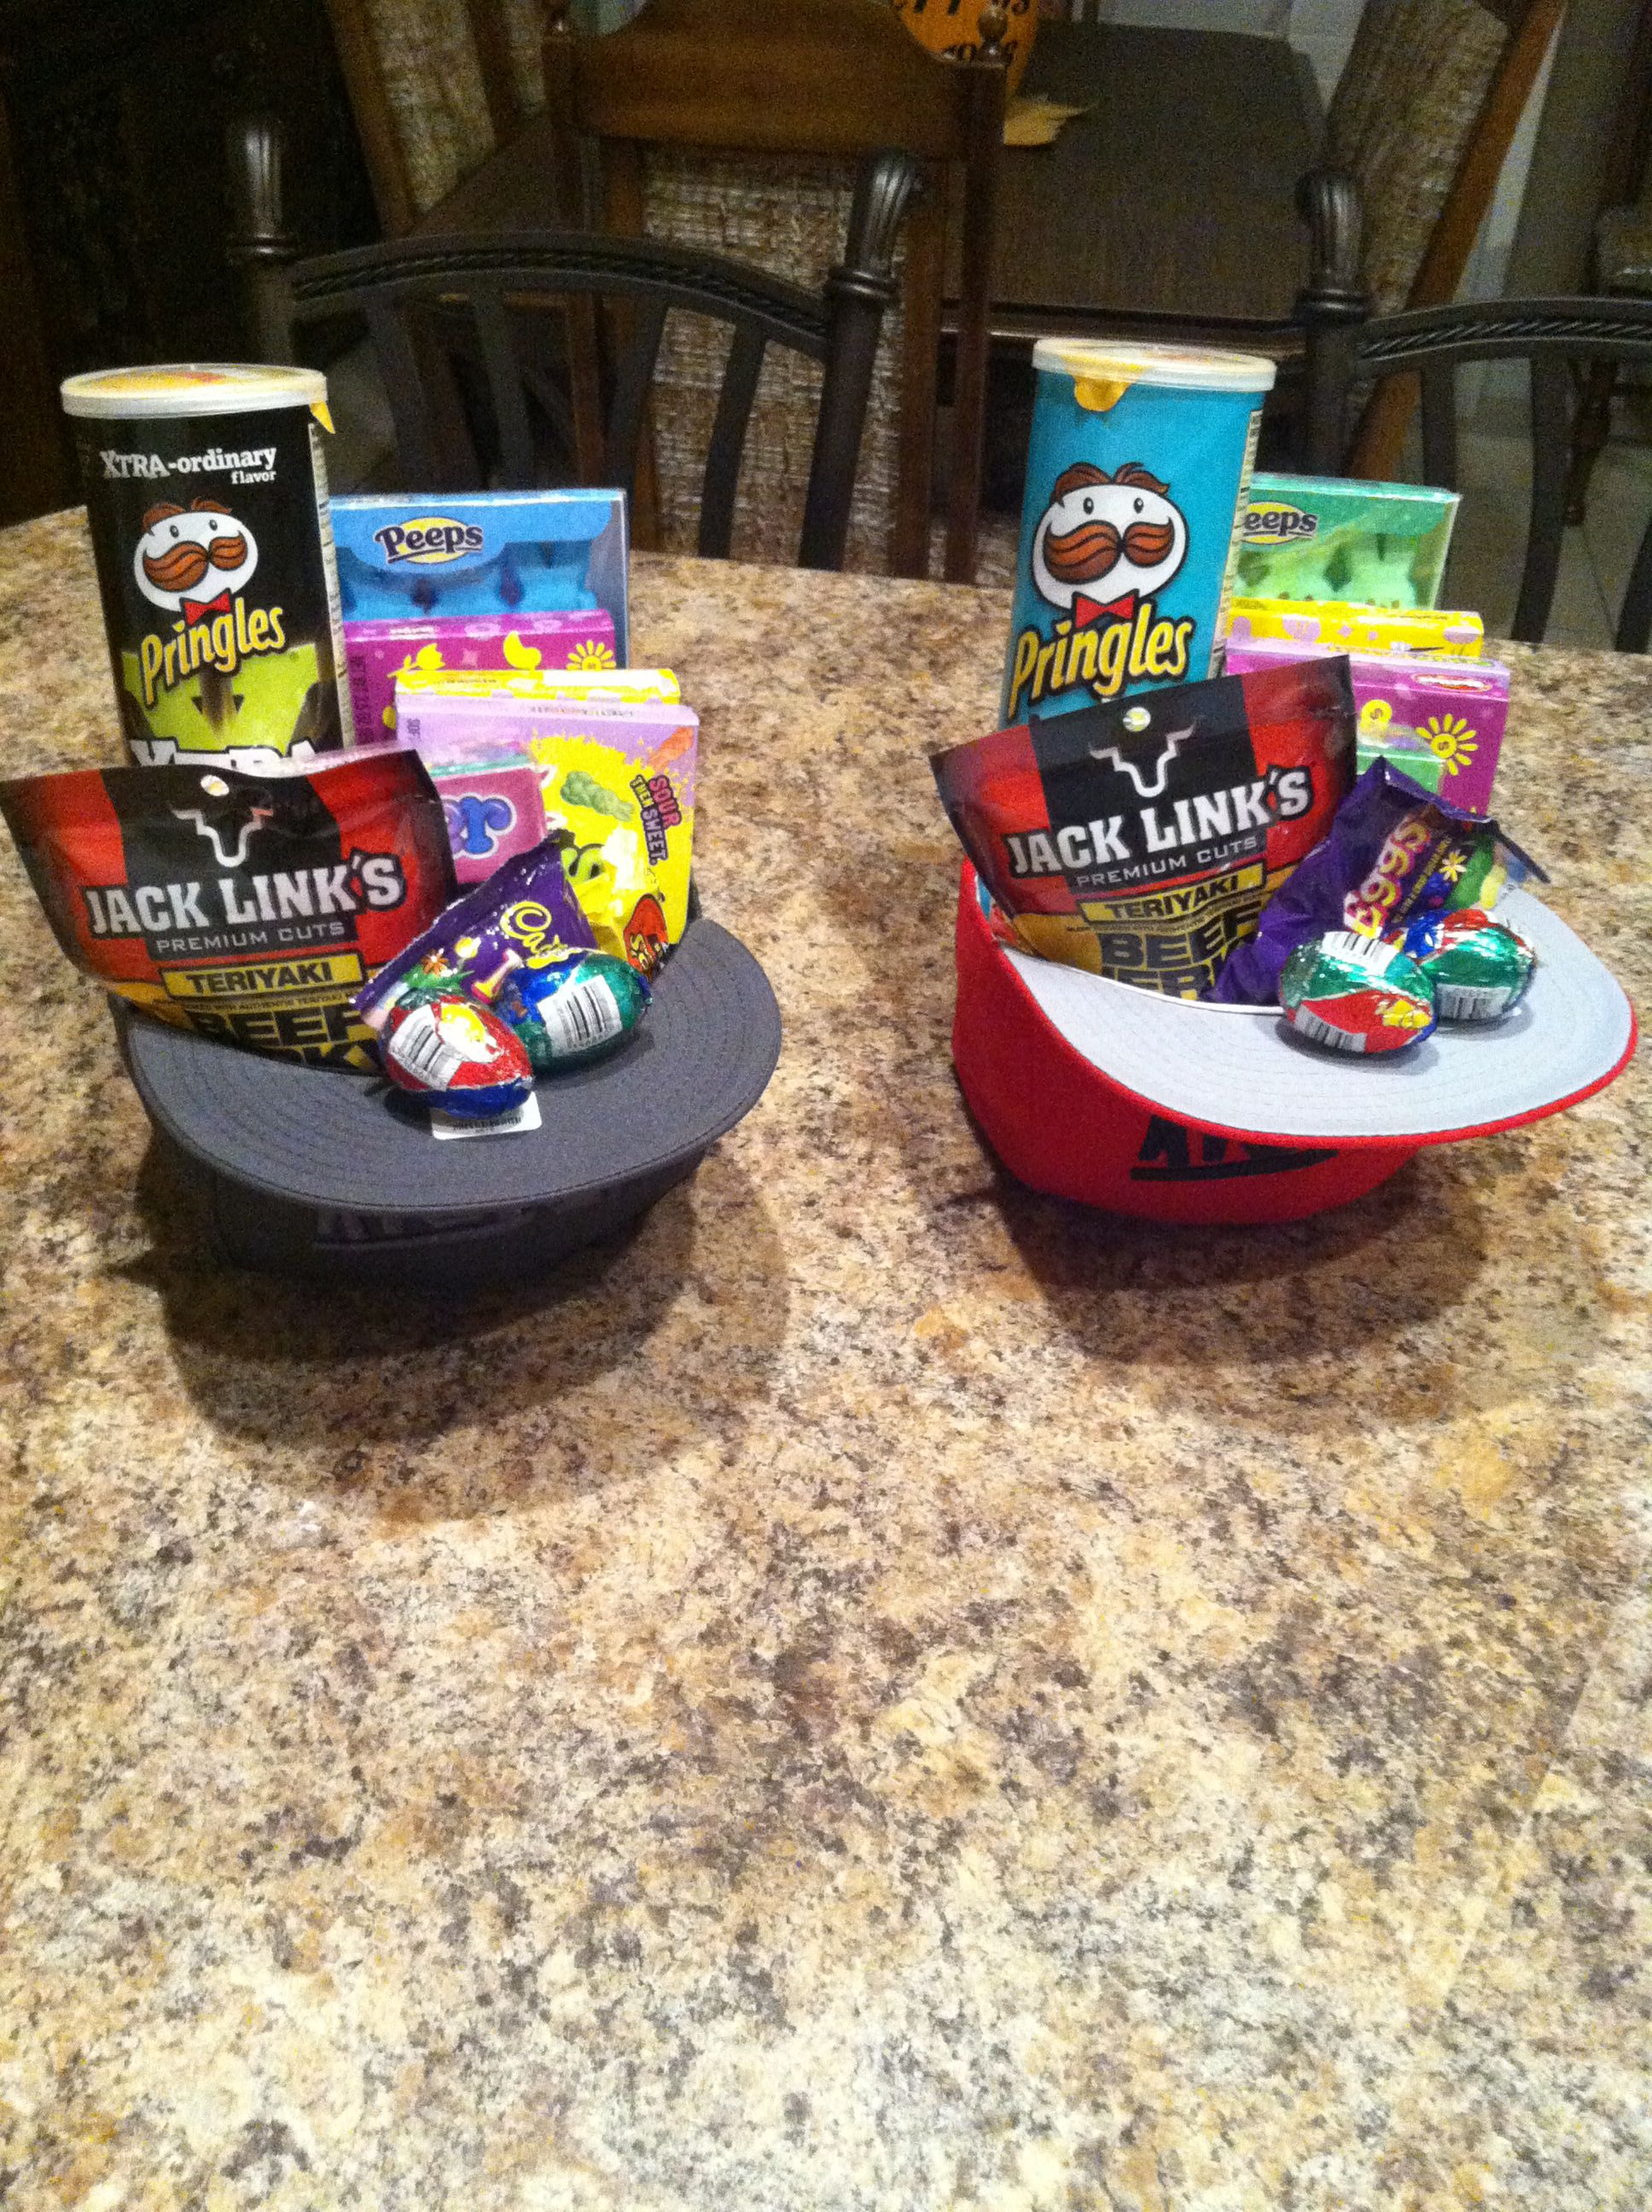 Easter Basket Instead Of A Traditional Hat From Your Skate Fill It W Goos Especially If You Have Age Boys Who